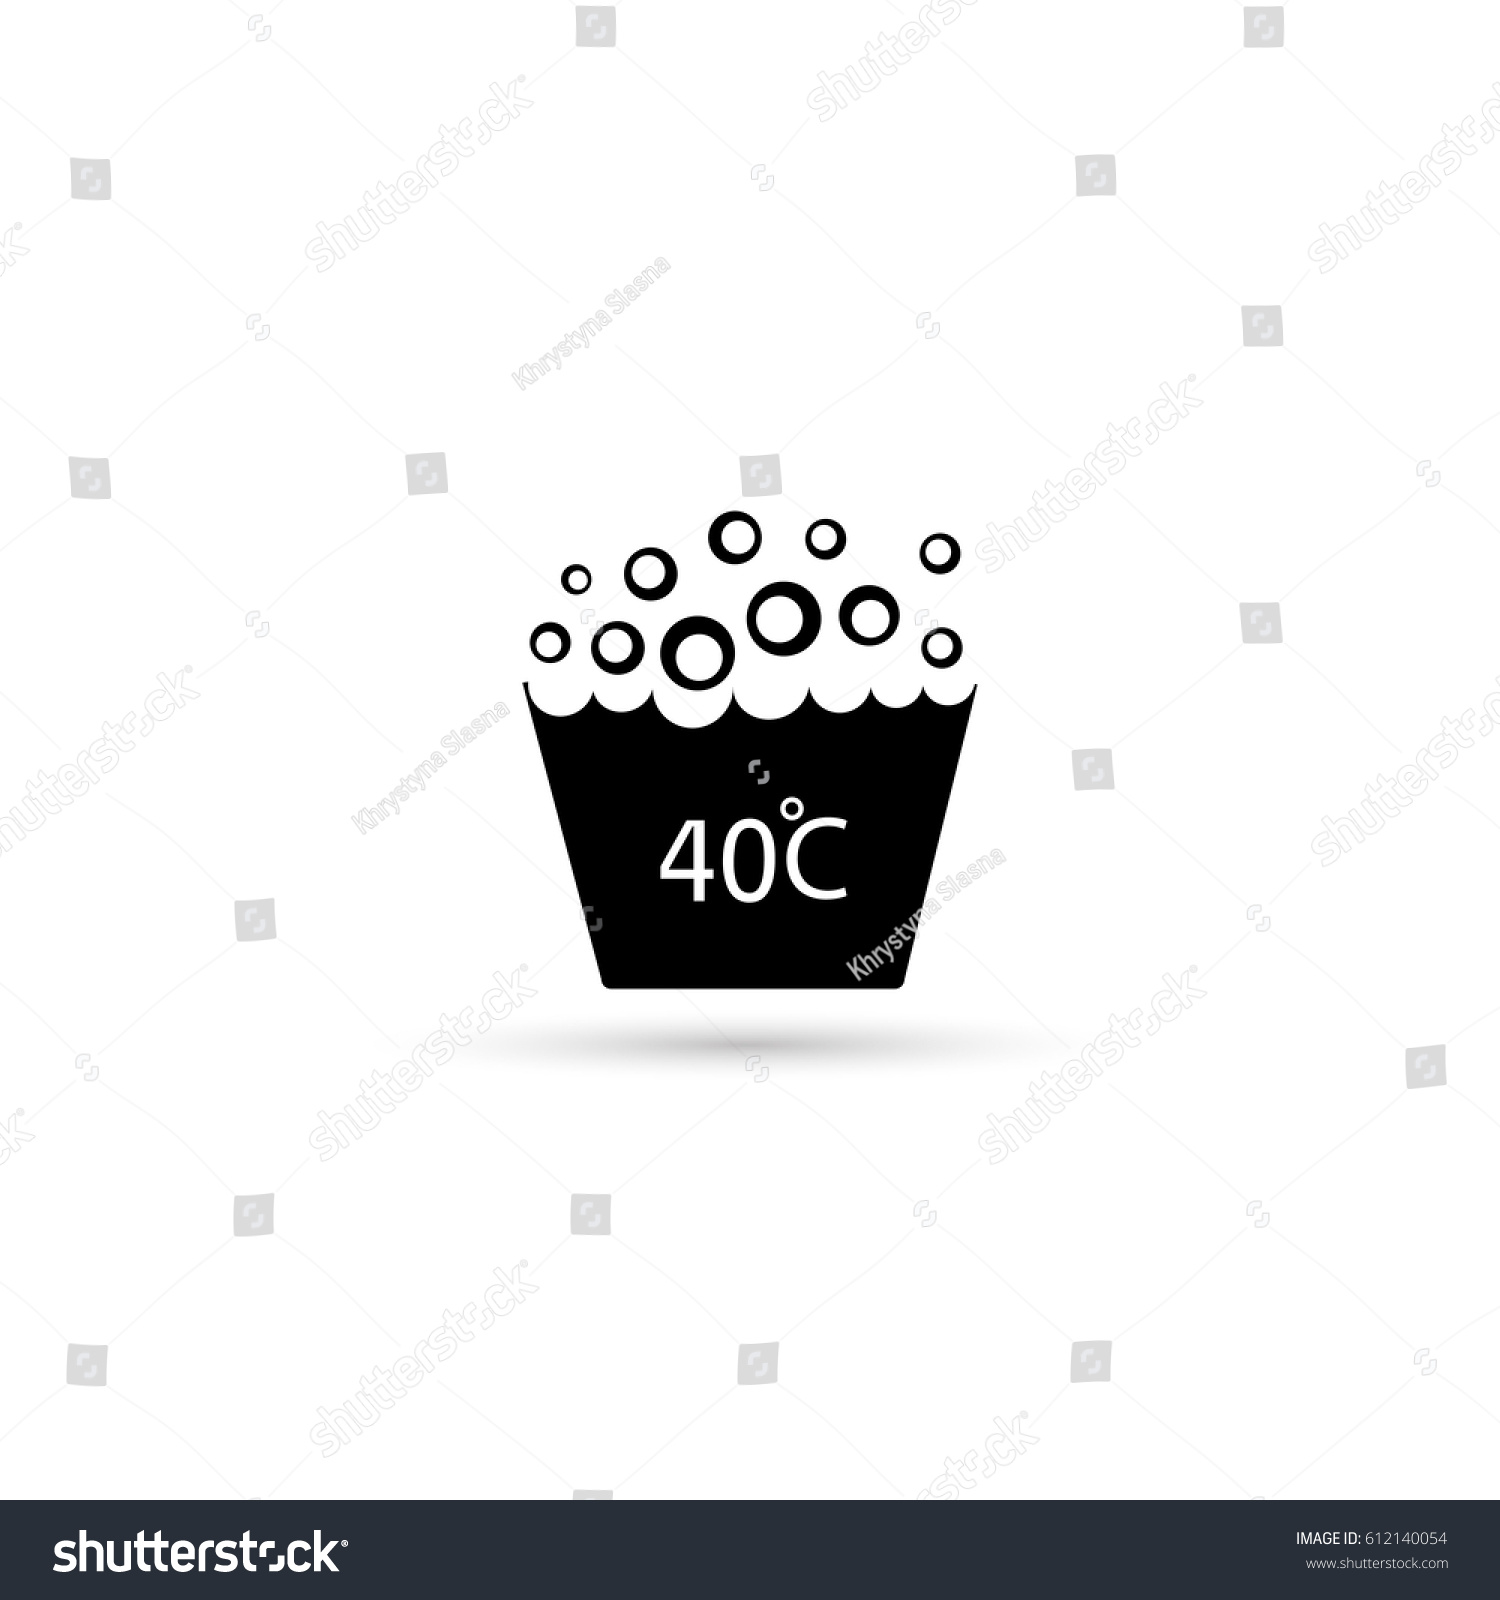 Washing Under 40 Degrees Celsius Textile Stock Vector Royalty Free